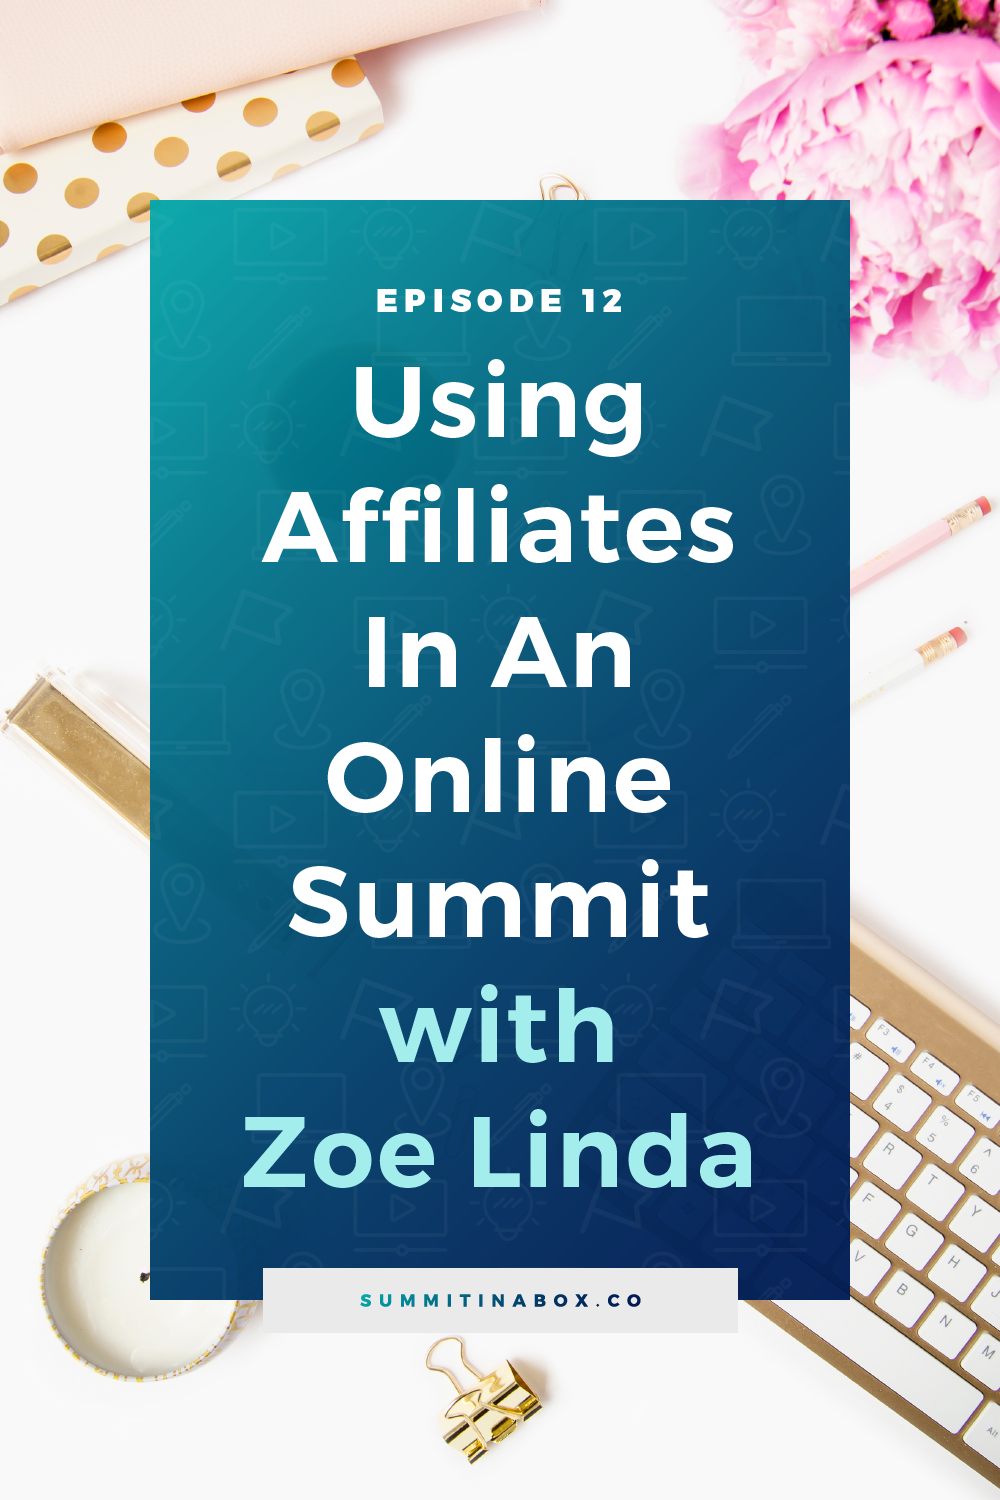 Leverage virtual summit affiliates to multiply your leads and revenue. We'll cover everything from the basics to how to find the best affiliates for your event.